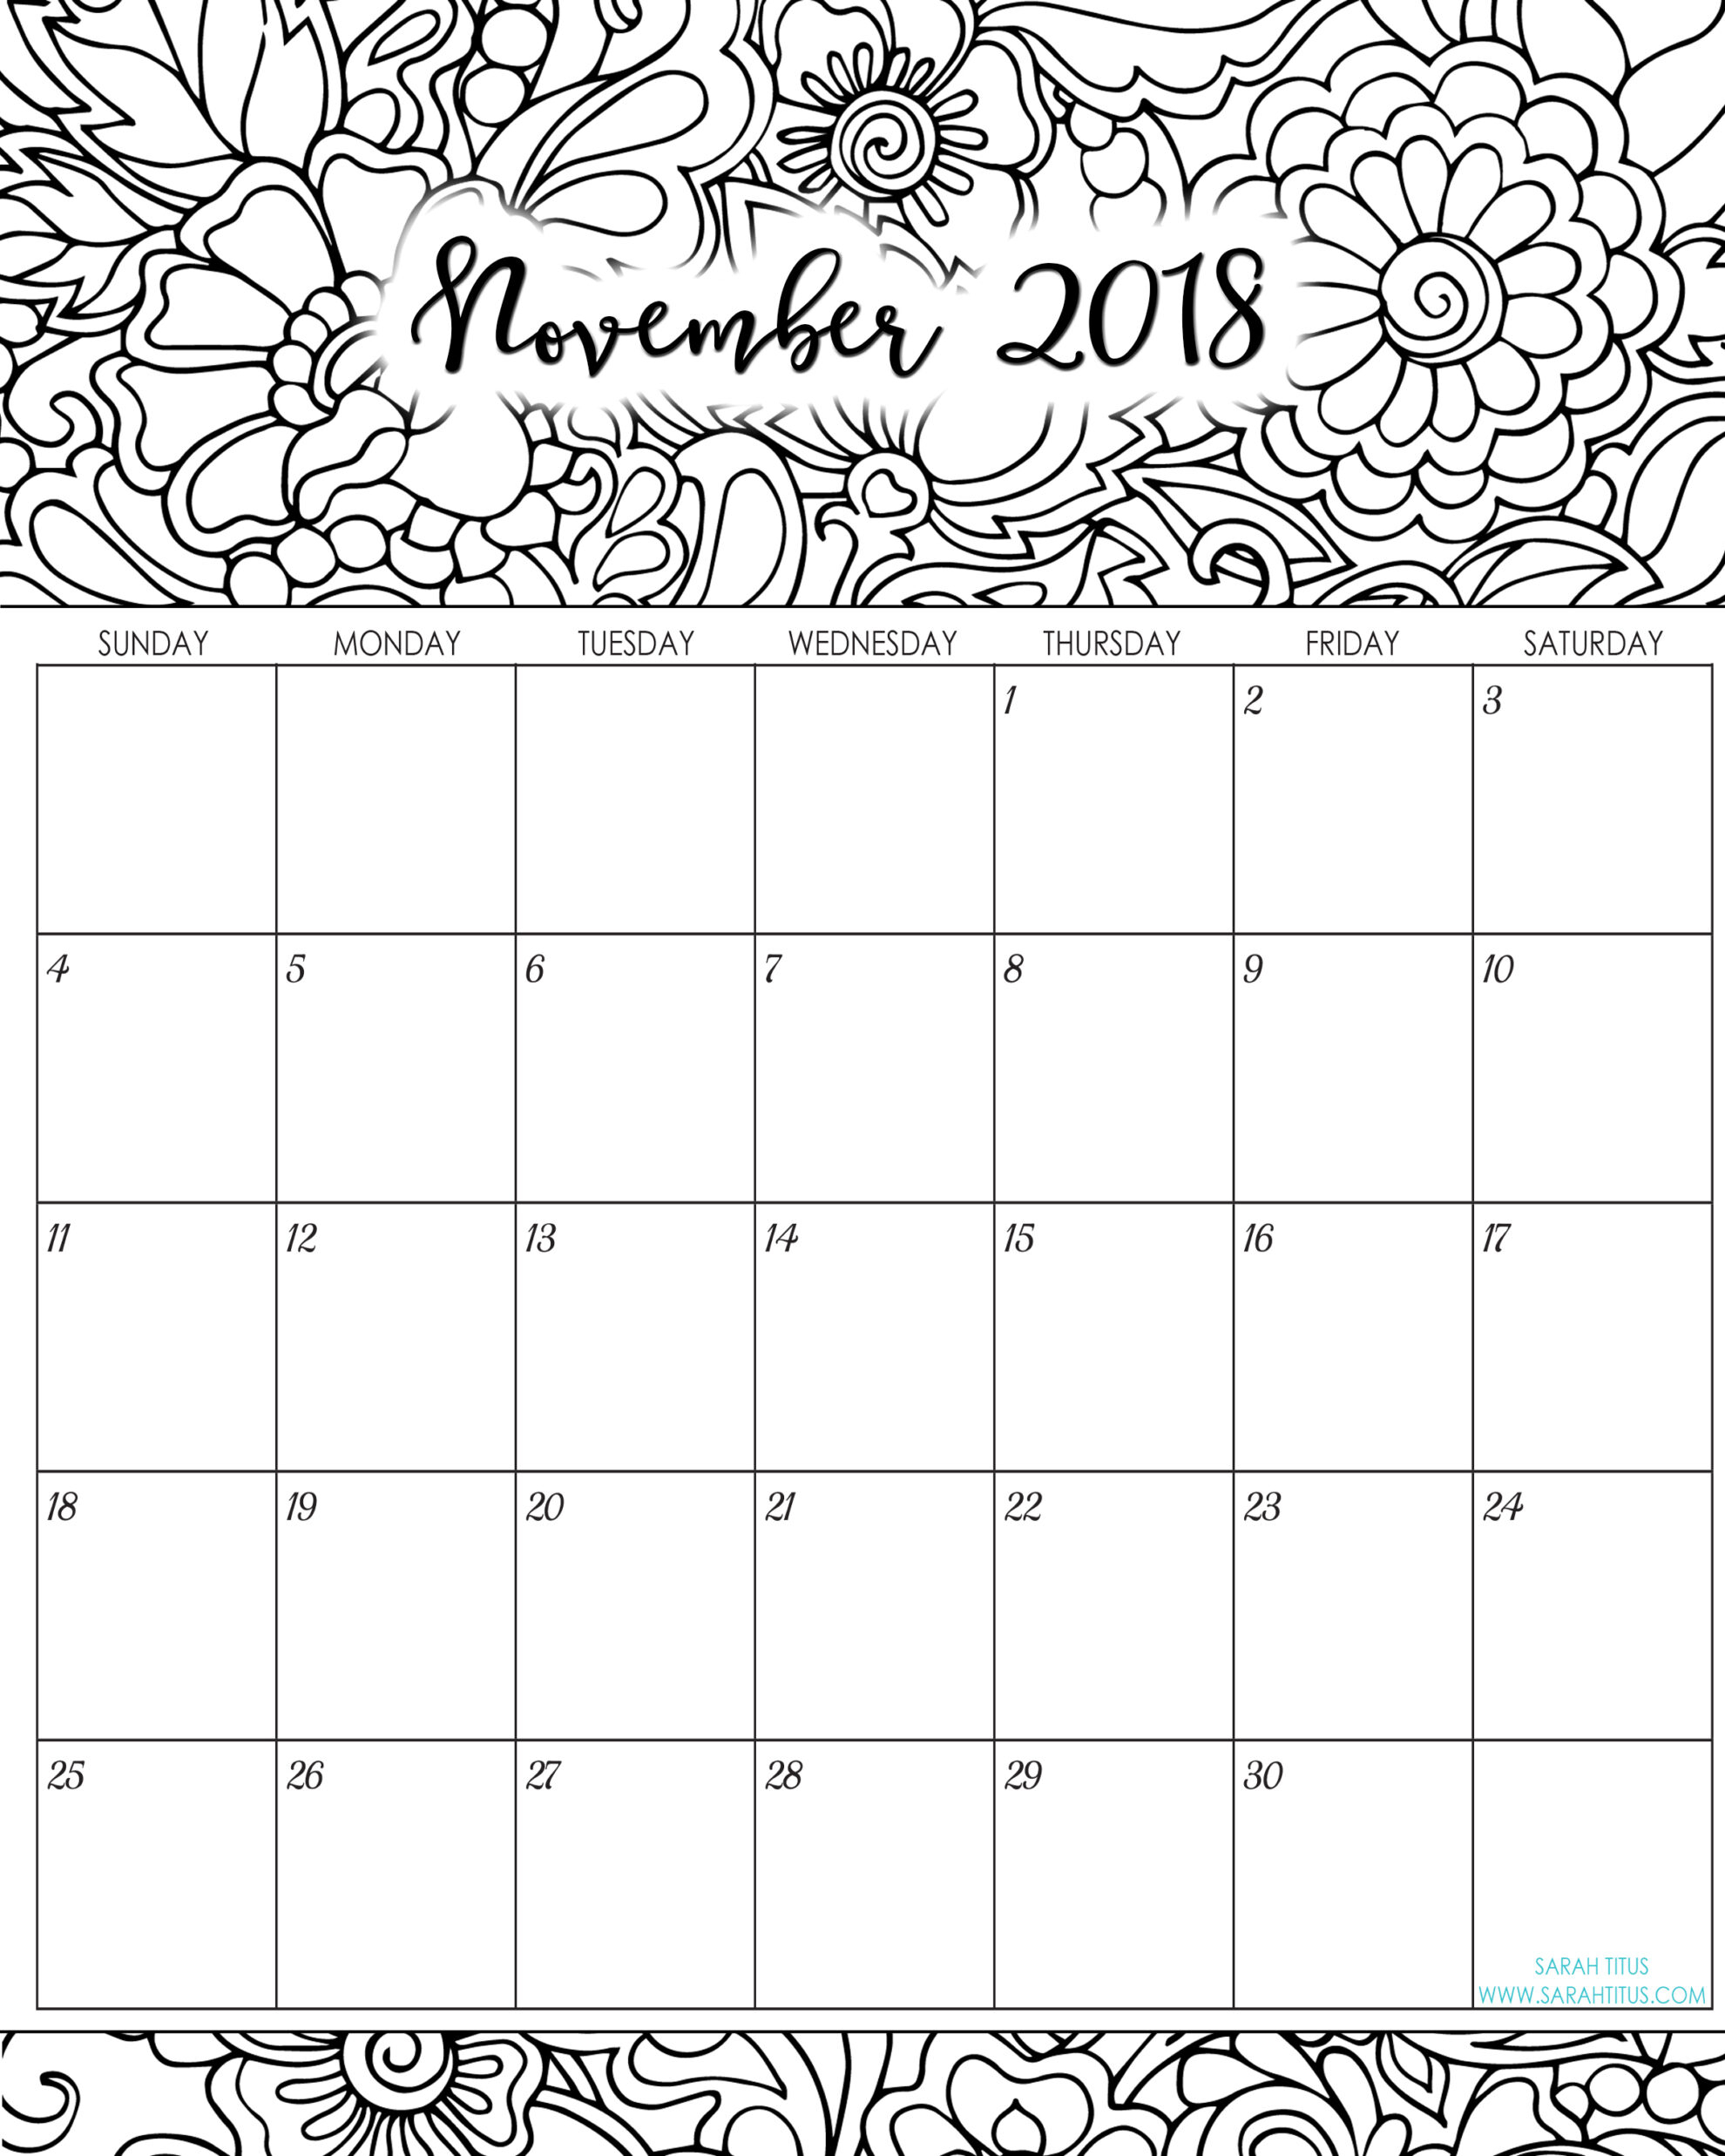 2018 Monthly Coloring Calendars Printables  Sarah Titus pertaining to Sarah Titus Calendar